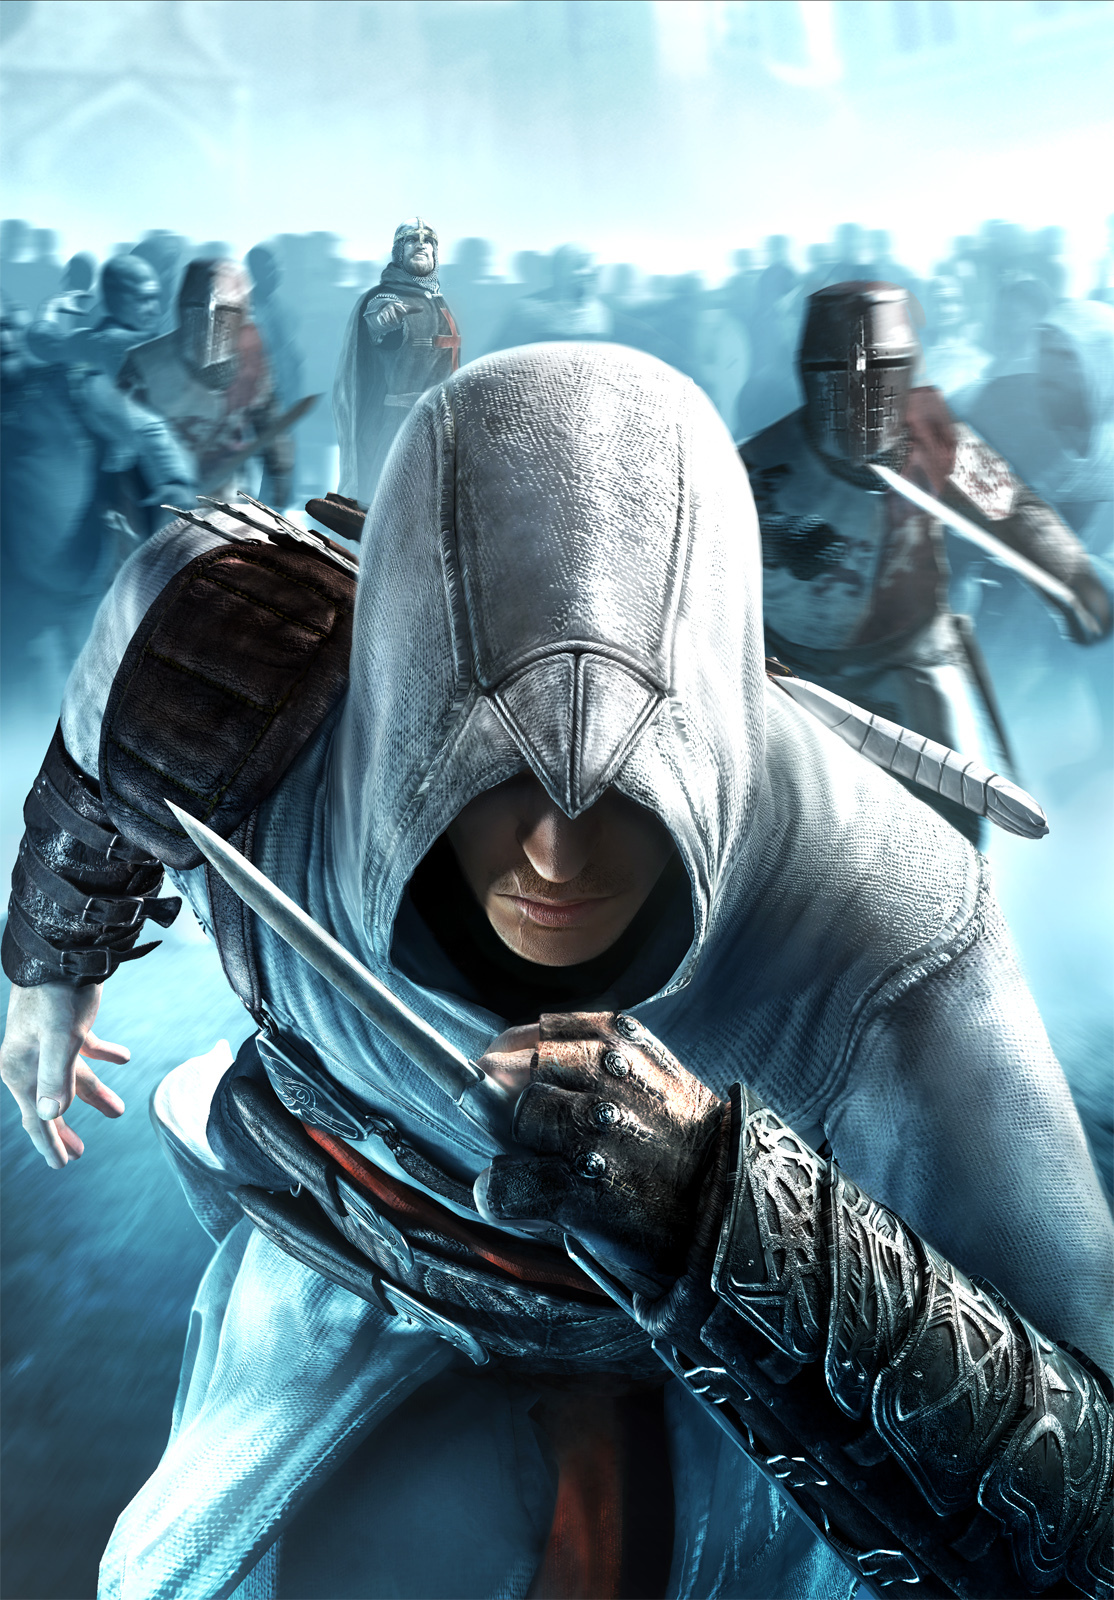 22408 download wallpaper Games, Men, Assassin's Creed screensavers and pictures for free